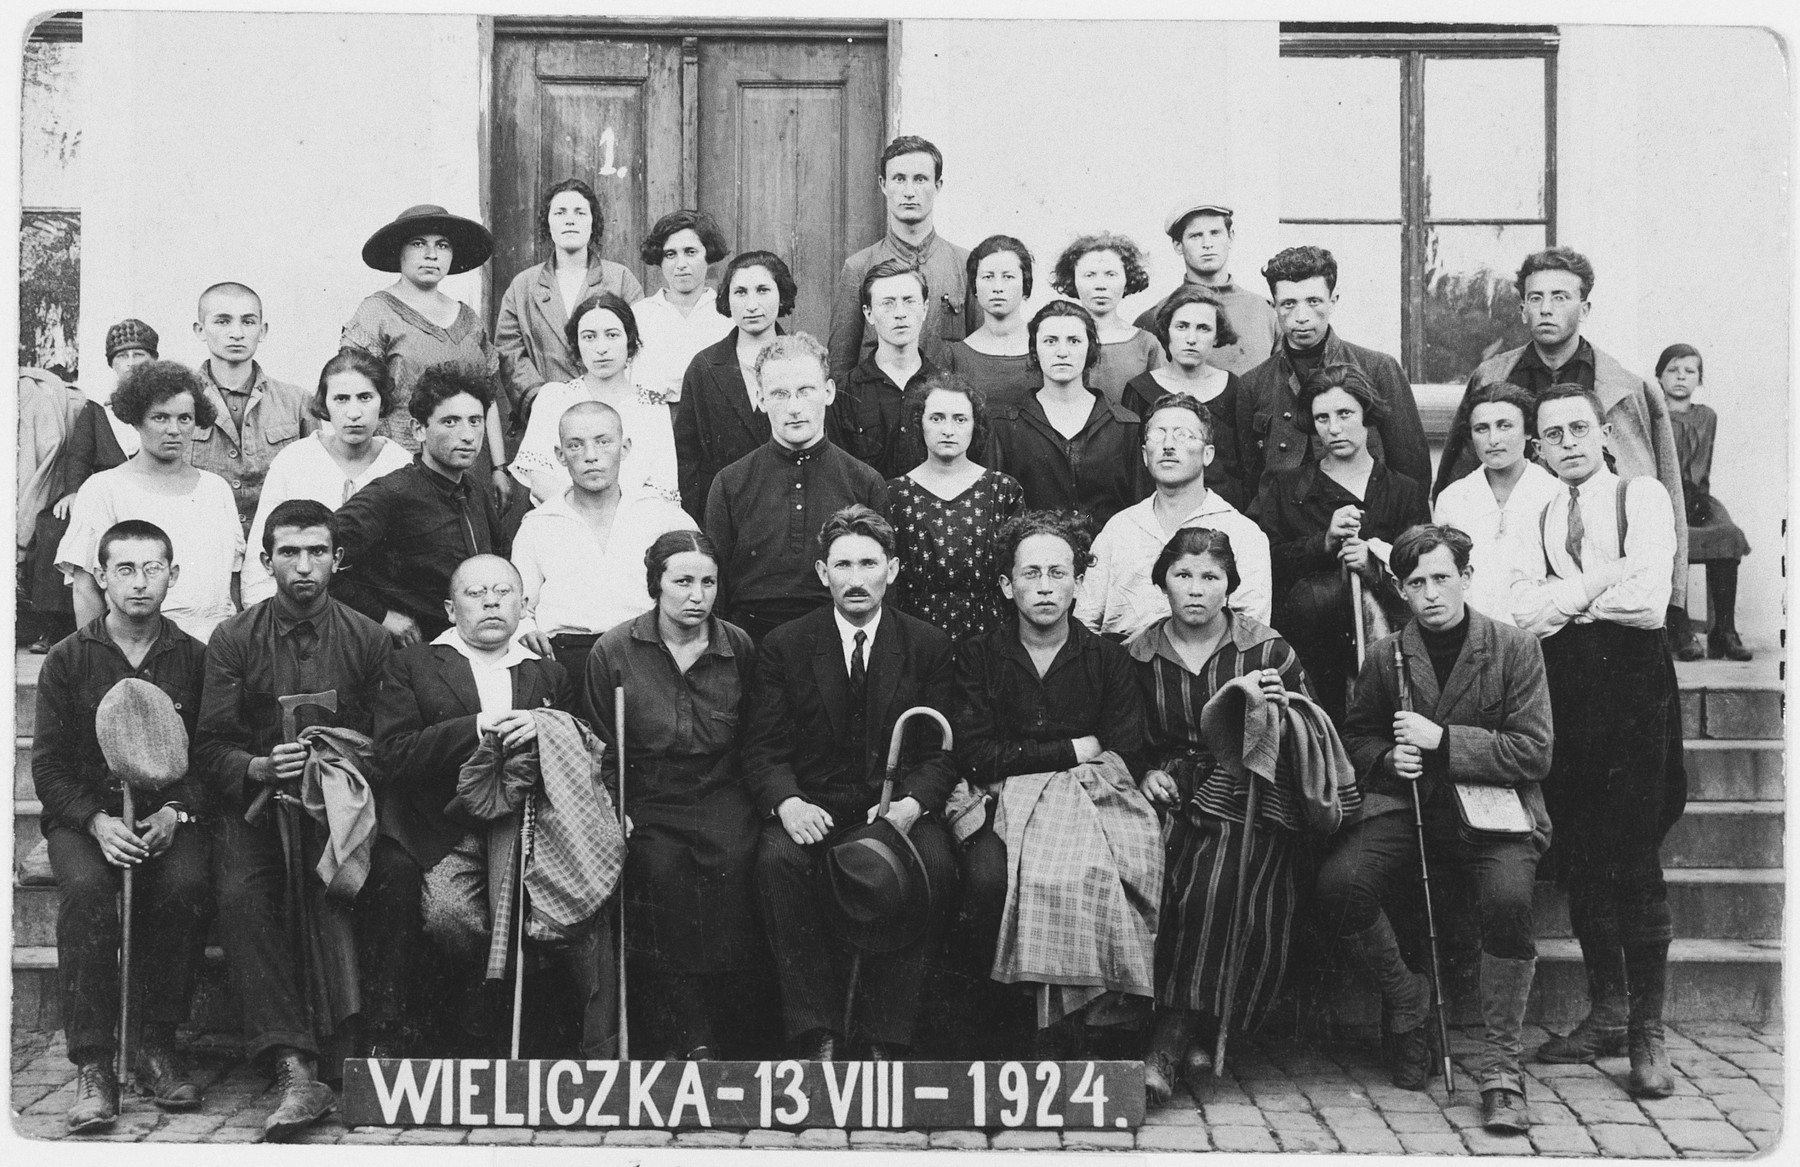 First graduation ceremony of the Vilner Lerer Seminar (Yiddish Teachers' Seminary) taken in Wieliczka, Poland.  Among those pictured are Jaffe-Shufres, Broyde, Yosef Kac, A. Segalowicz, L. Mashewitski, F. Barakin, Batke, Wiles, Y. Trupianski, Shifres, Prapitker, Akoshke, Kahanowicz.